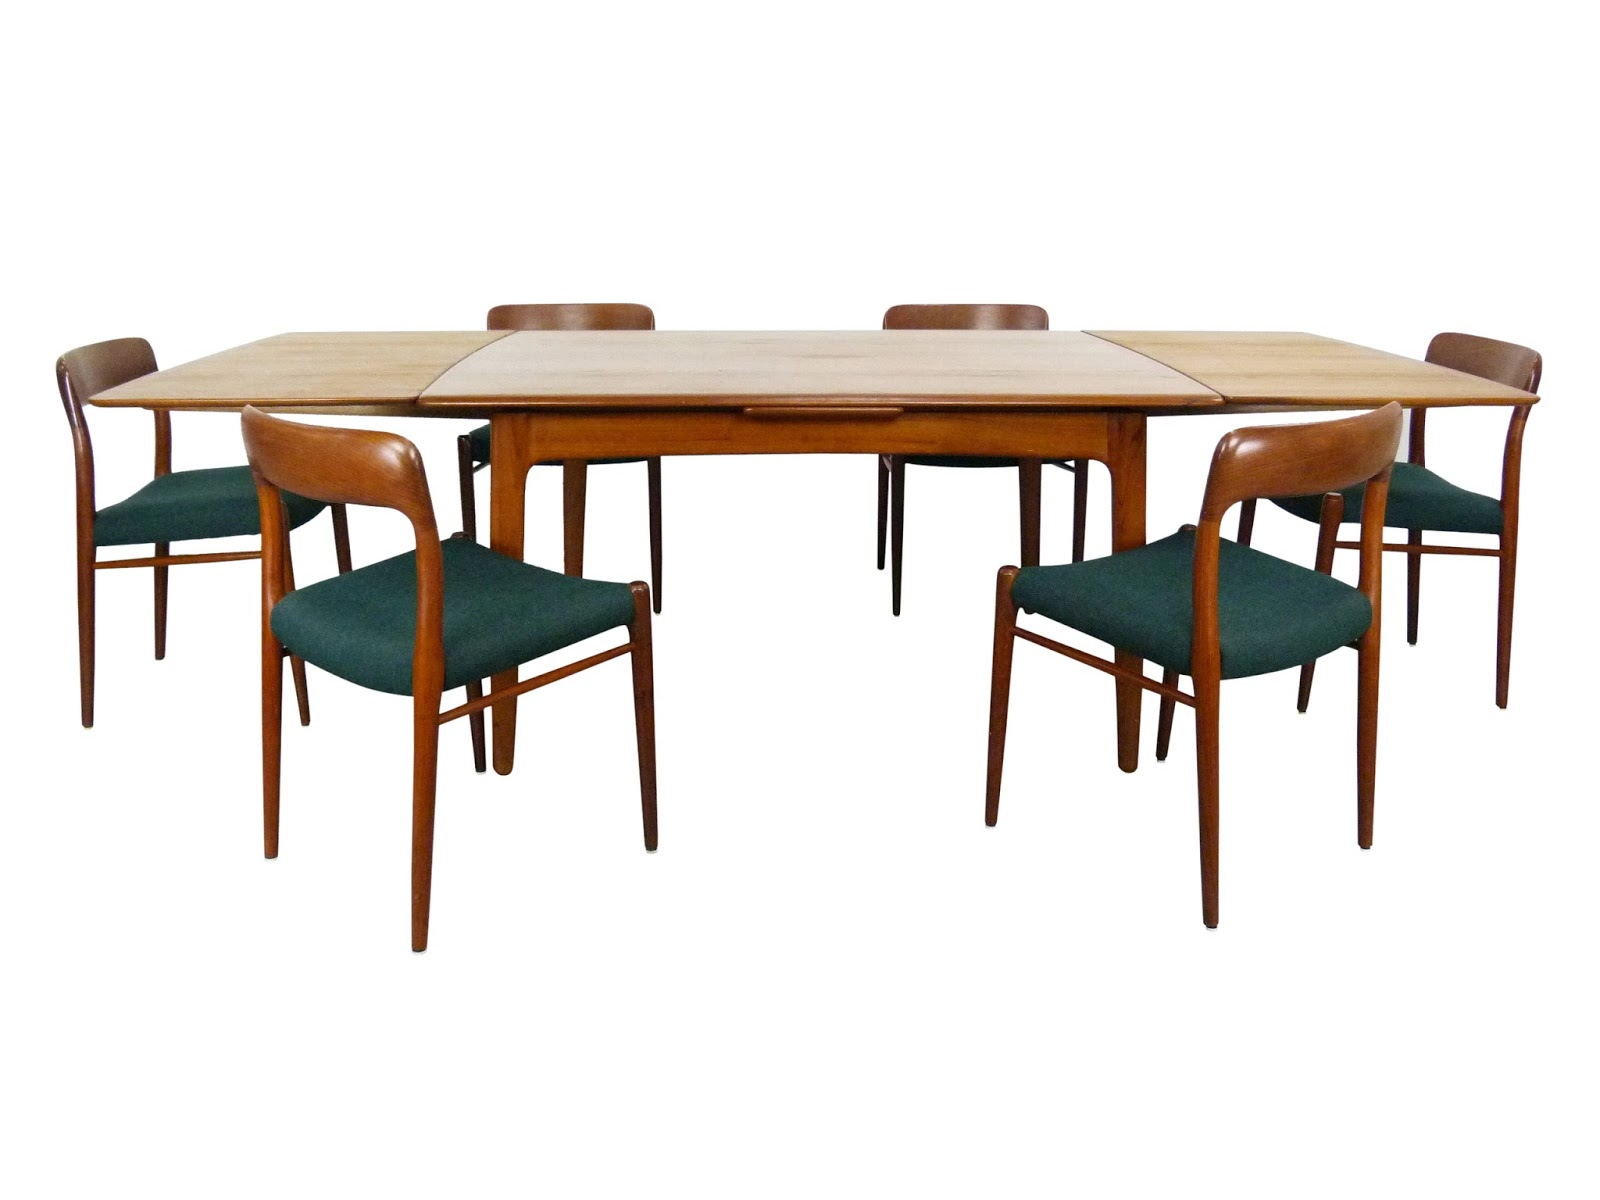 Etonnant JL Niels Moller Teak Dining Table U0026 # 75 Chairs Danish Modern 1